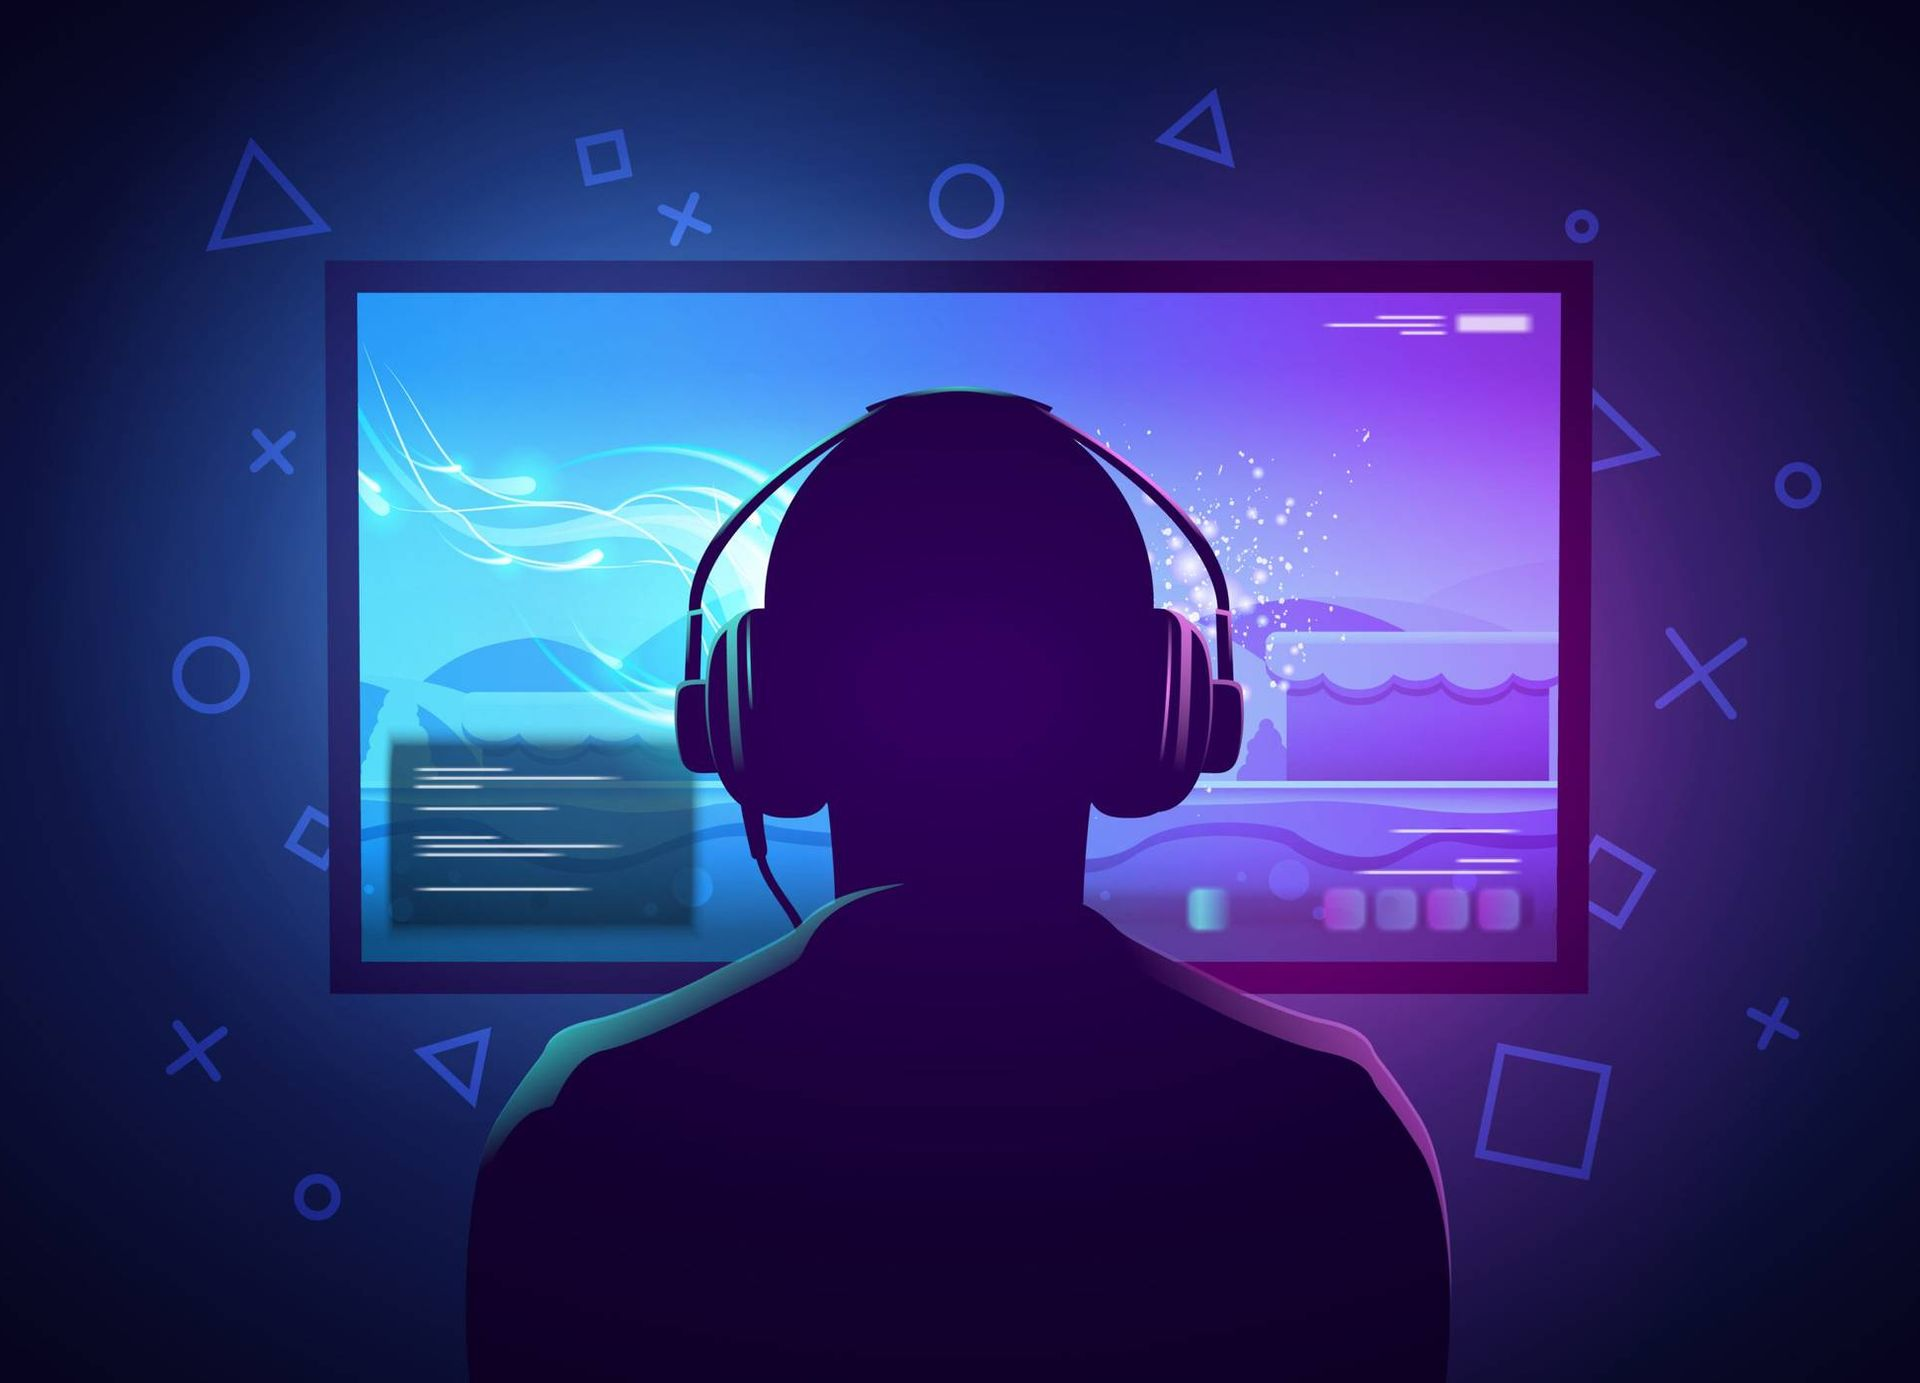 Illustration of video game player sitting in front of a screen, wearing headphones